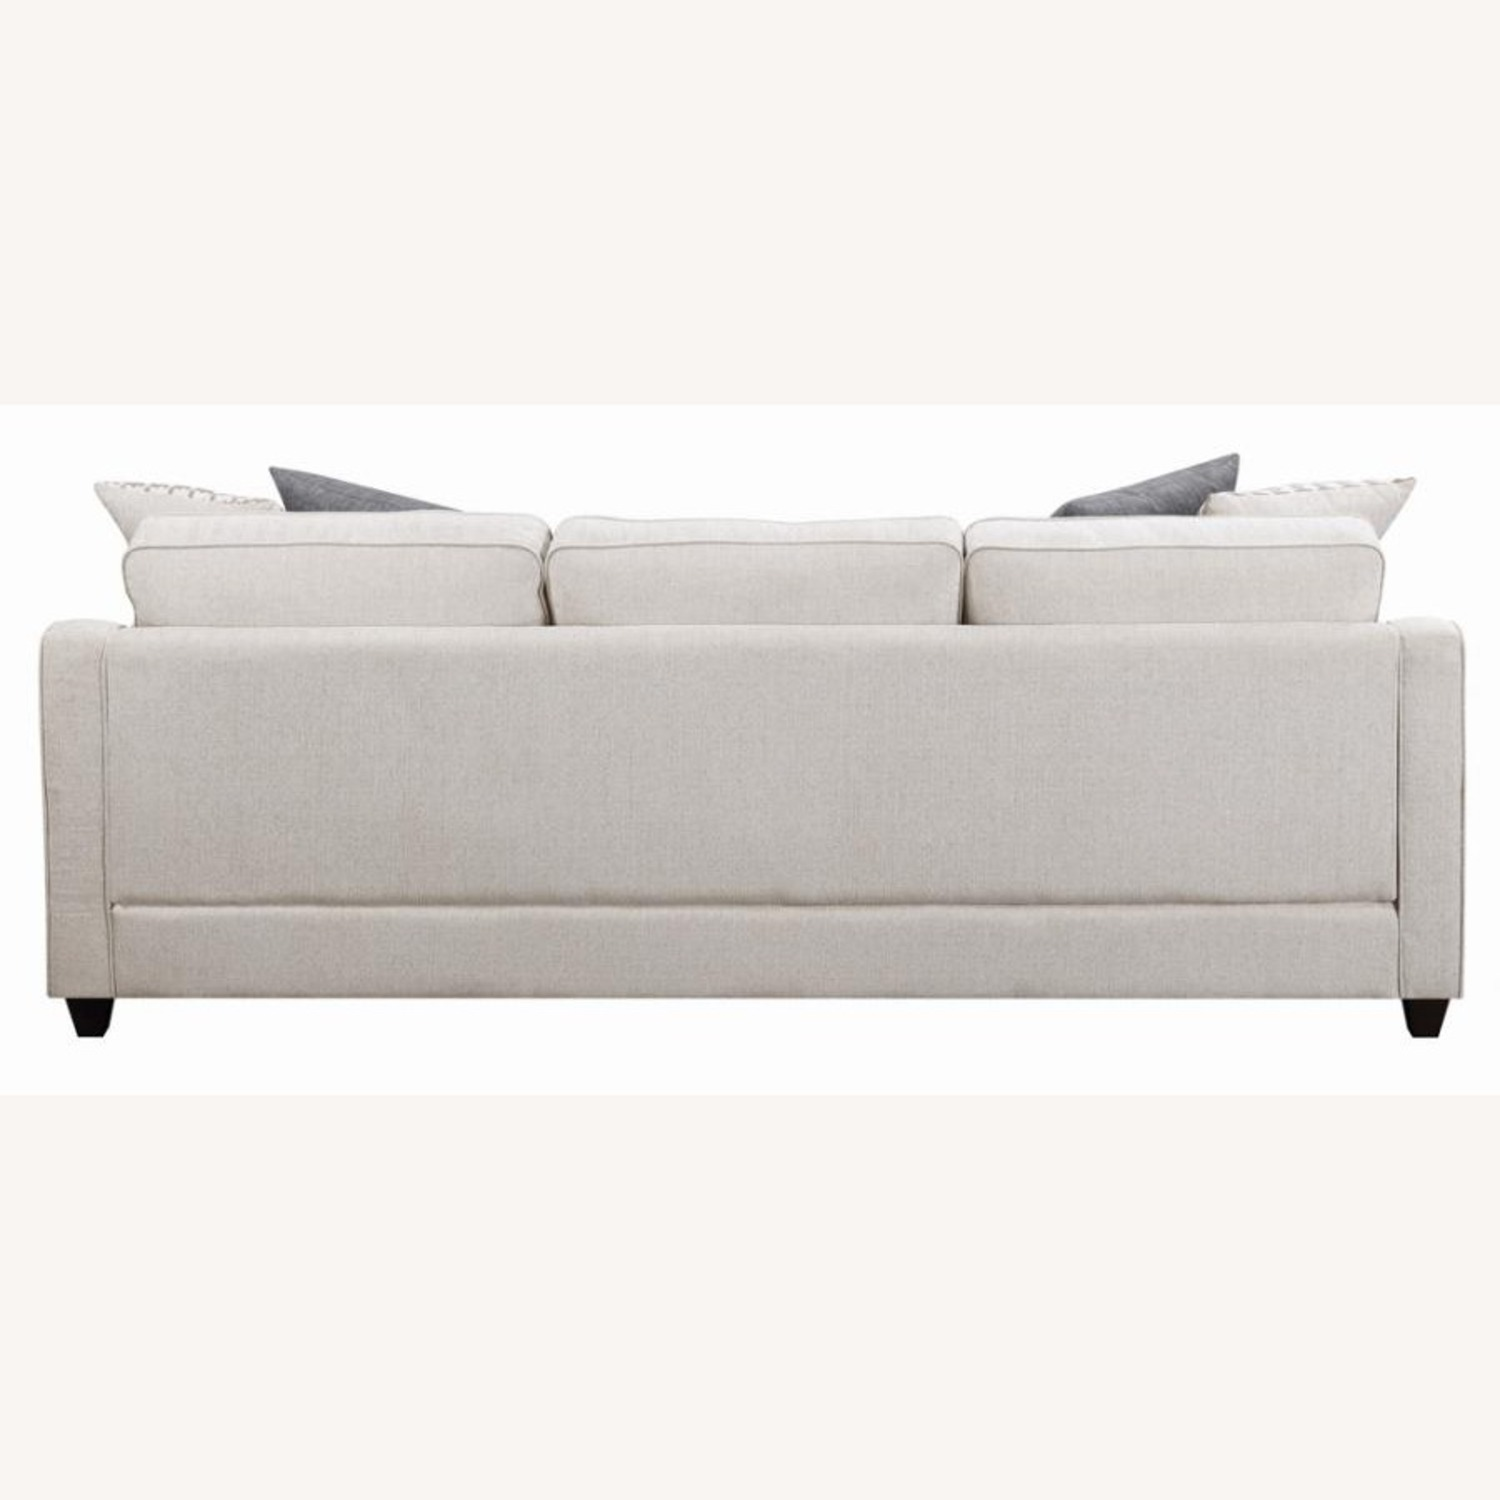 Sectional In Cream Chevron Dobby Upholstery - image-4